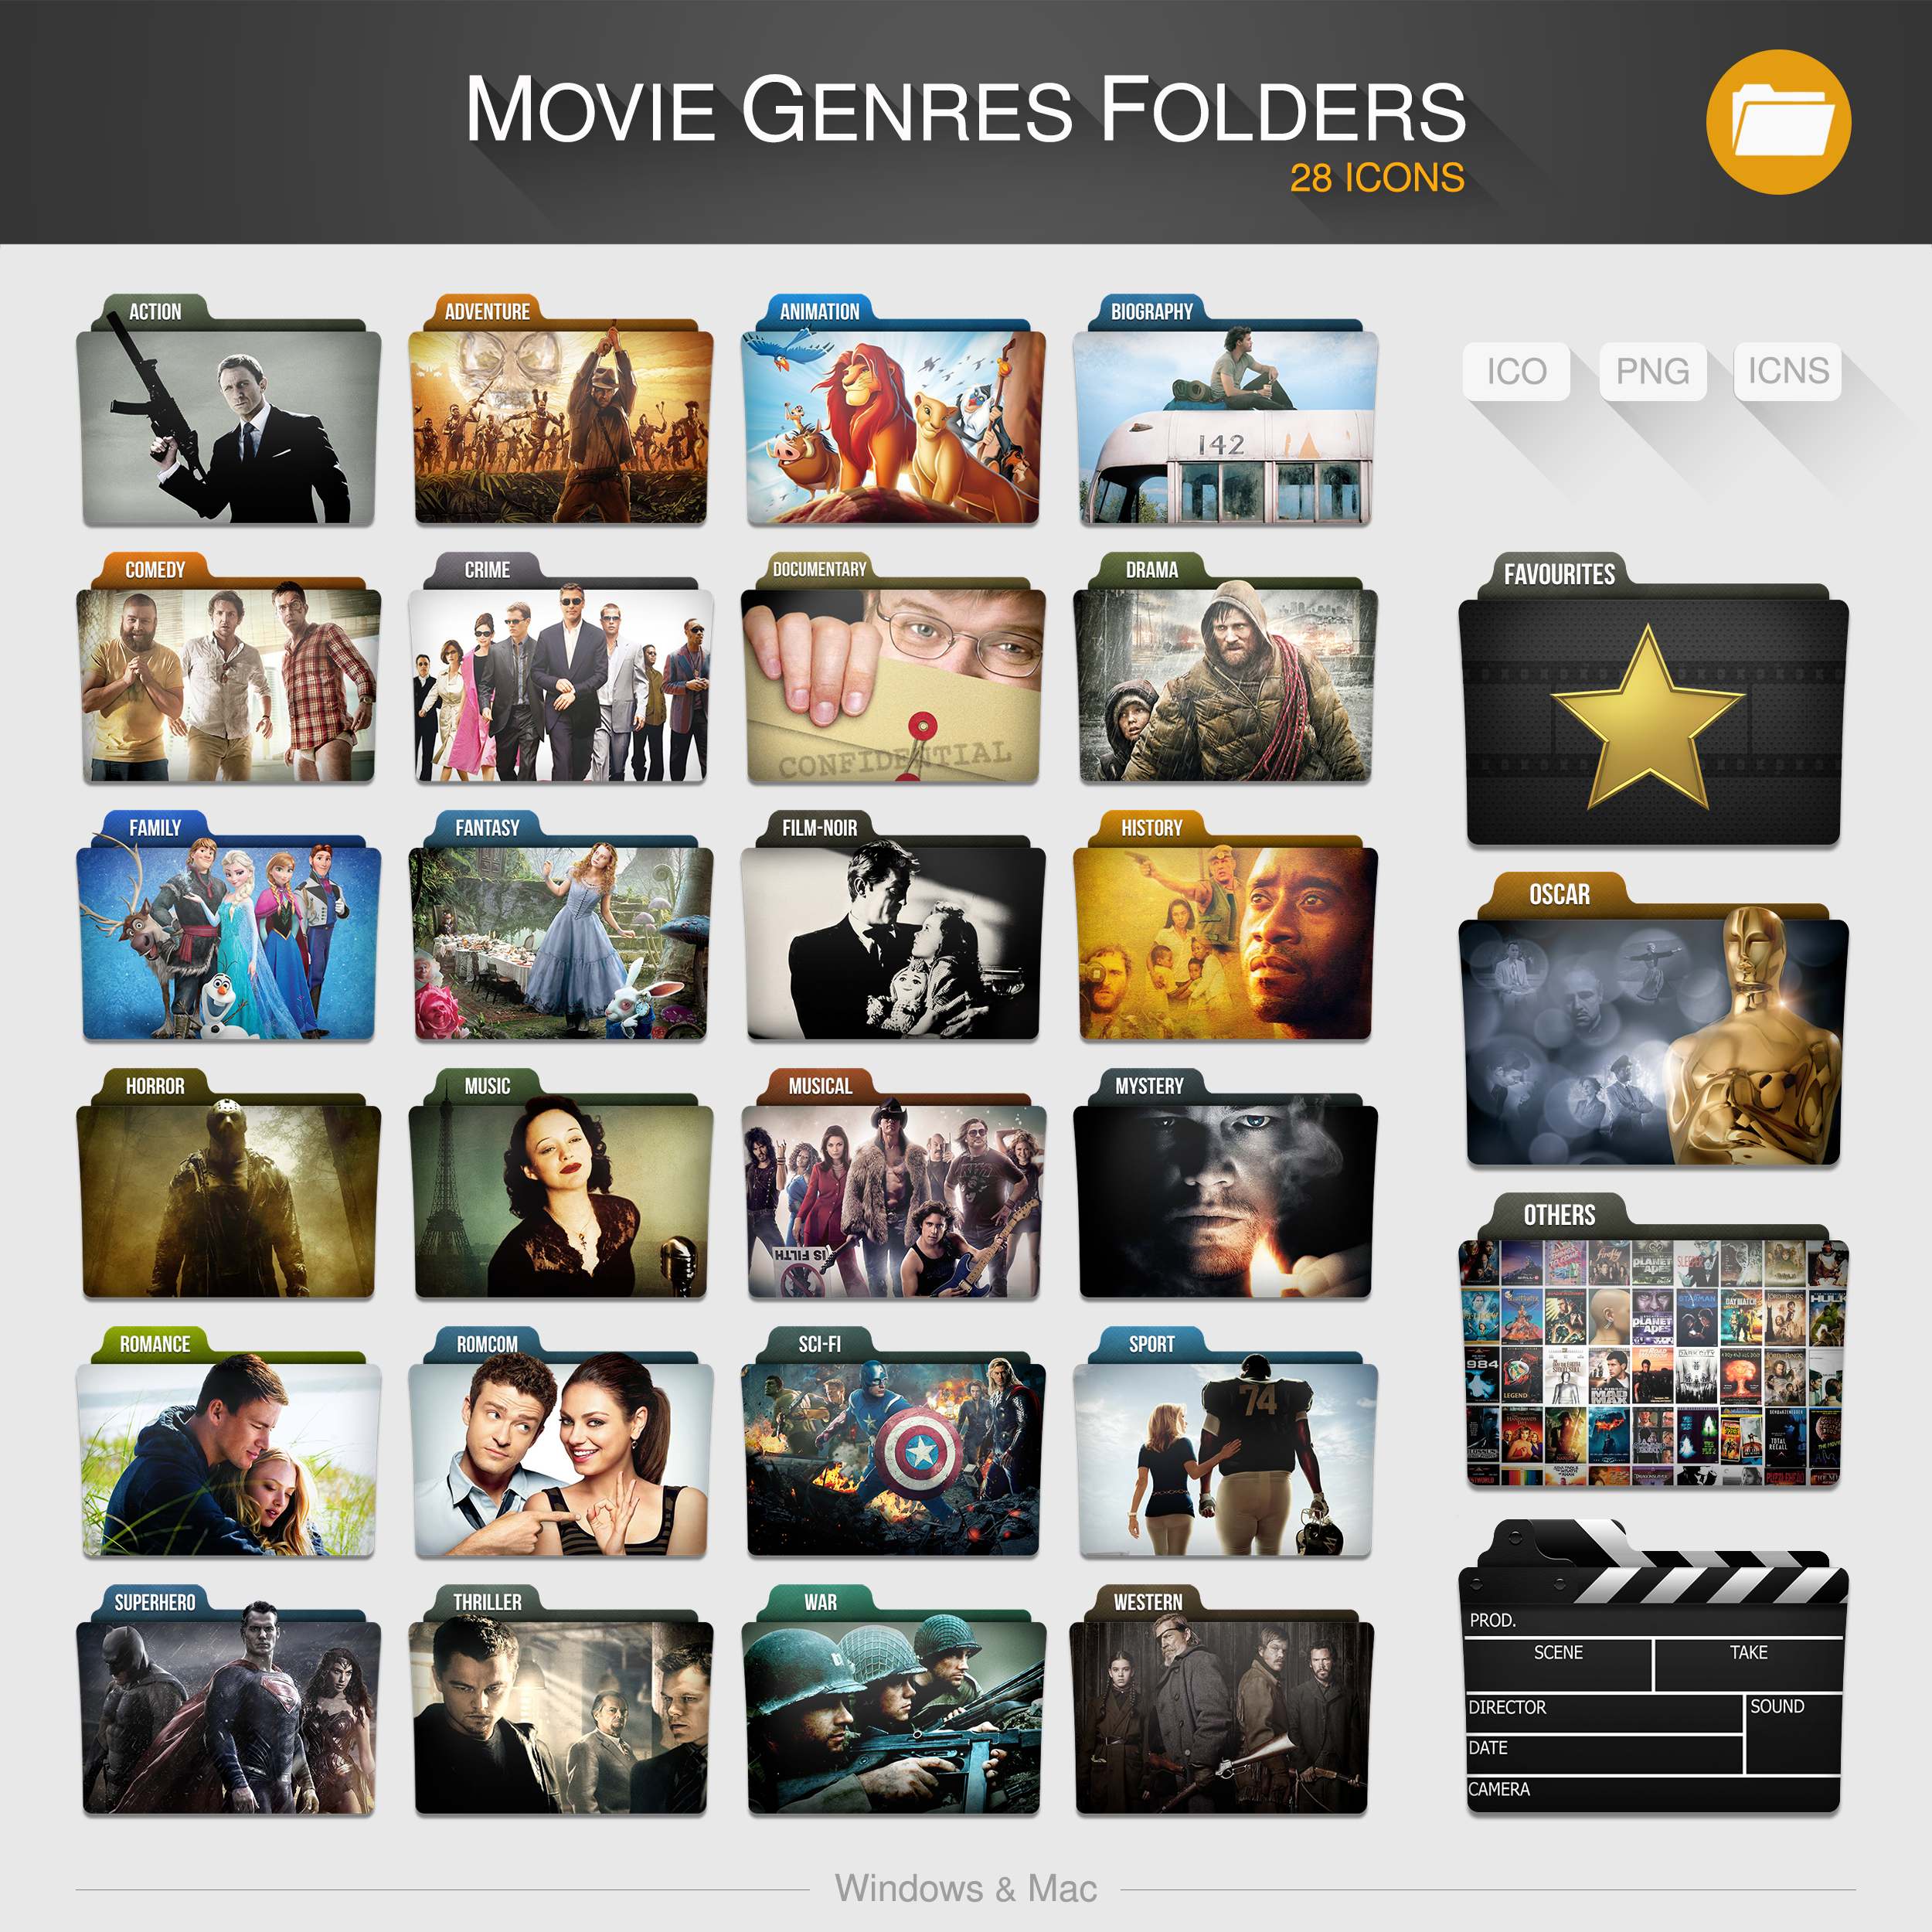 Movie Genres Folders By Limav Movie Genres Folders By Limav